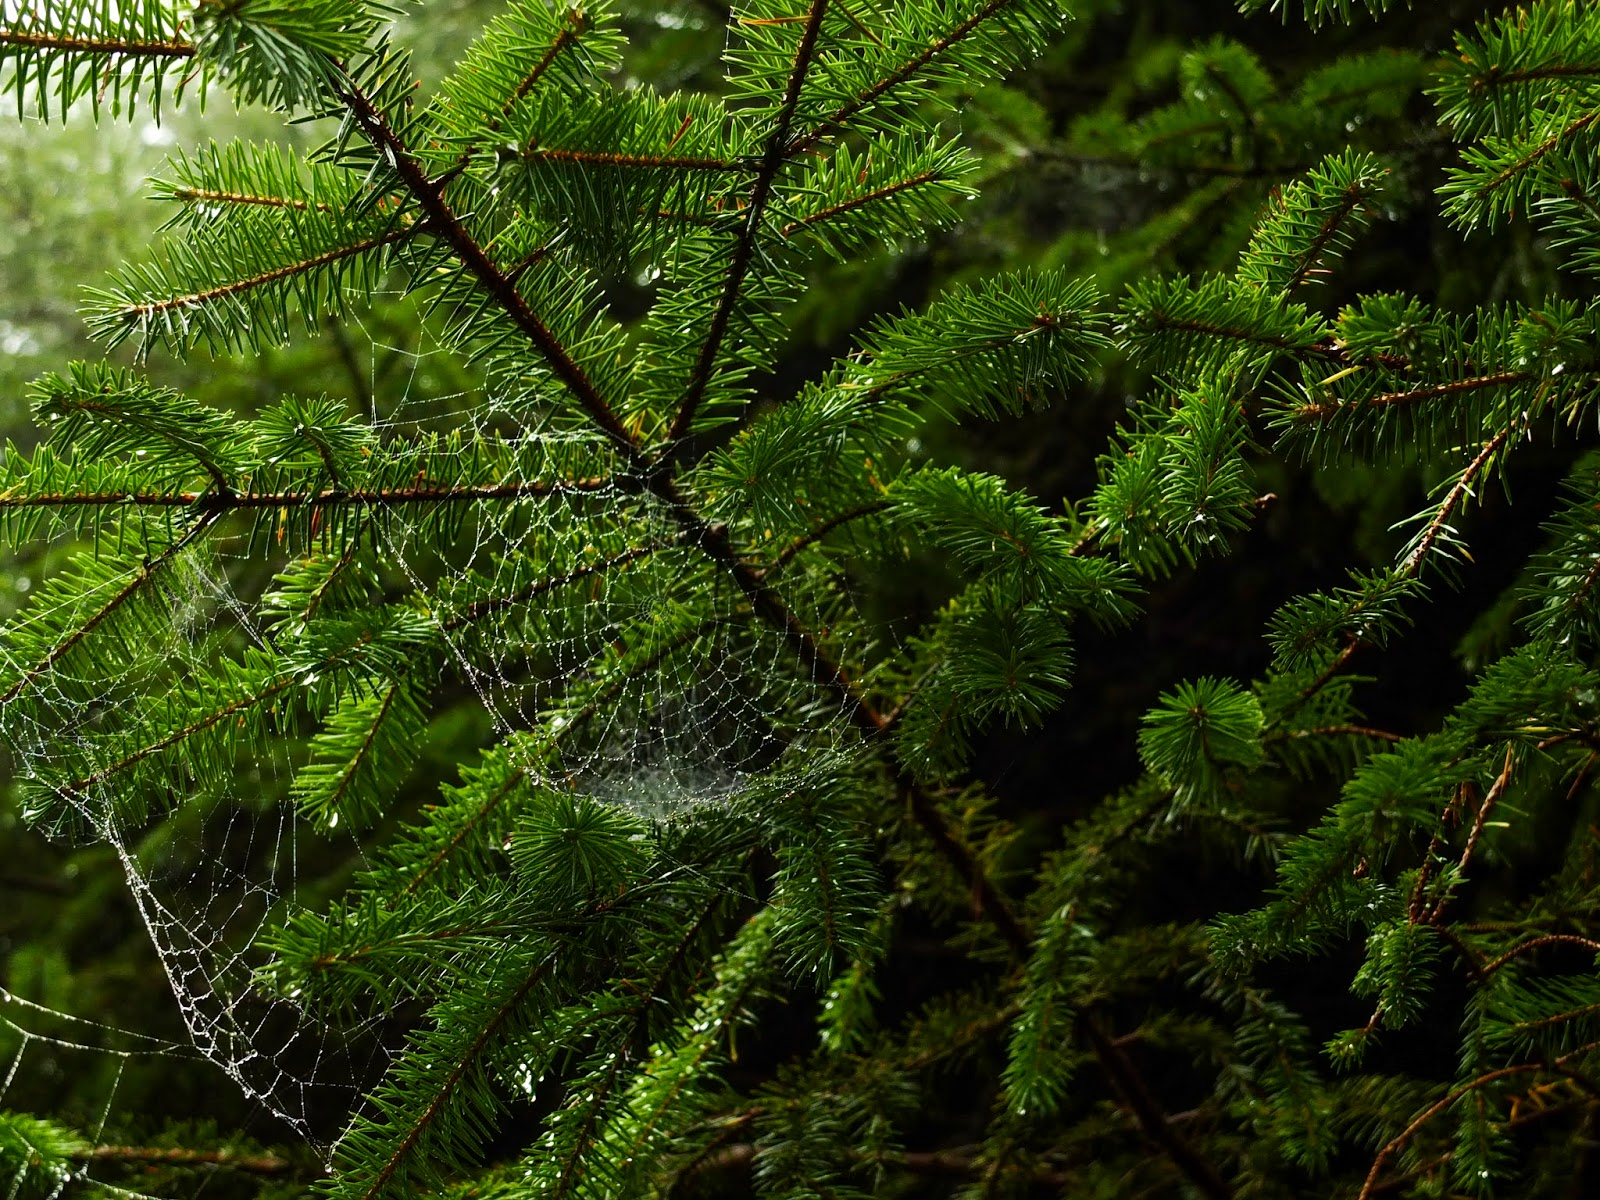 Spider webs gathered water droplets in conifer branches in the forest.